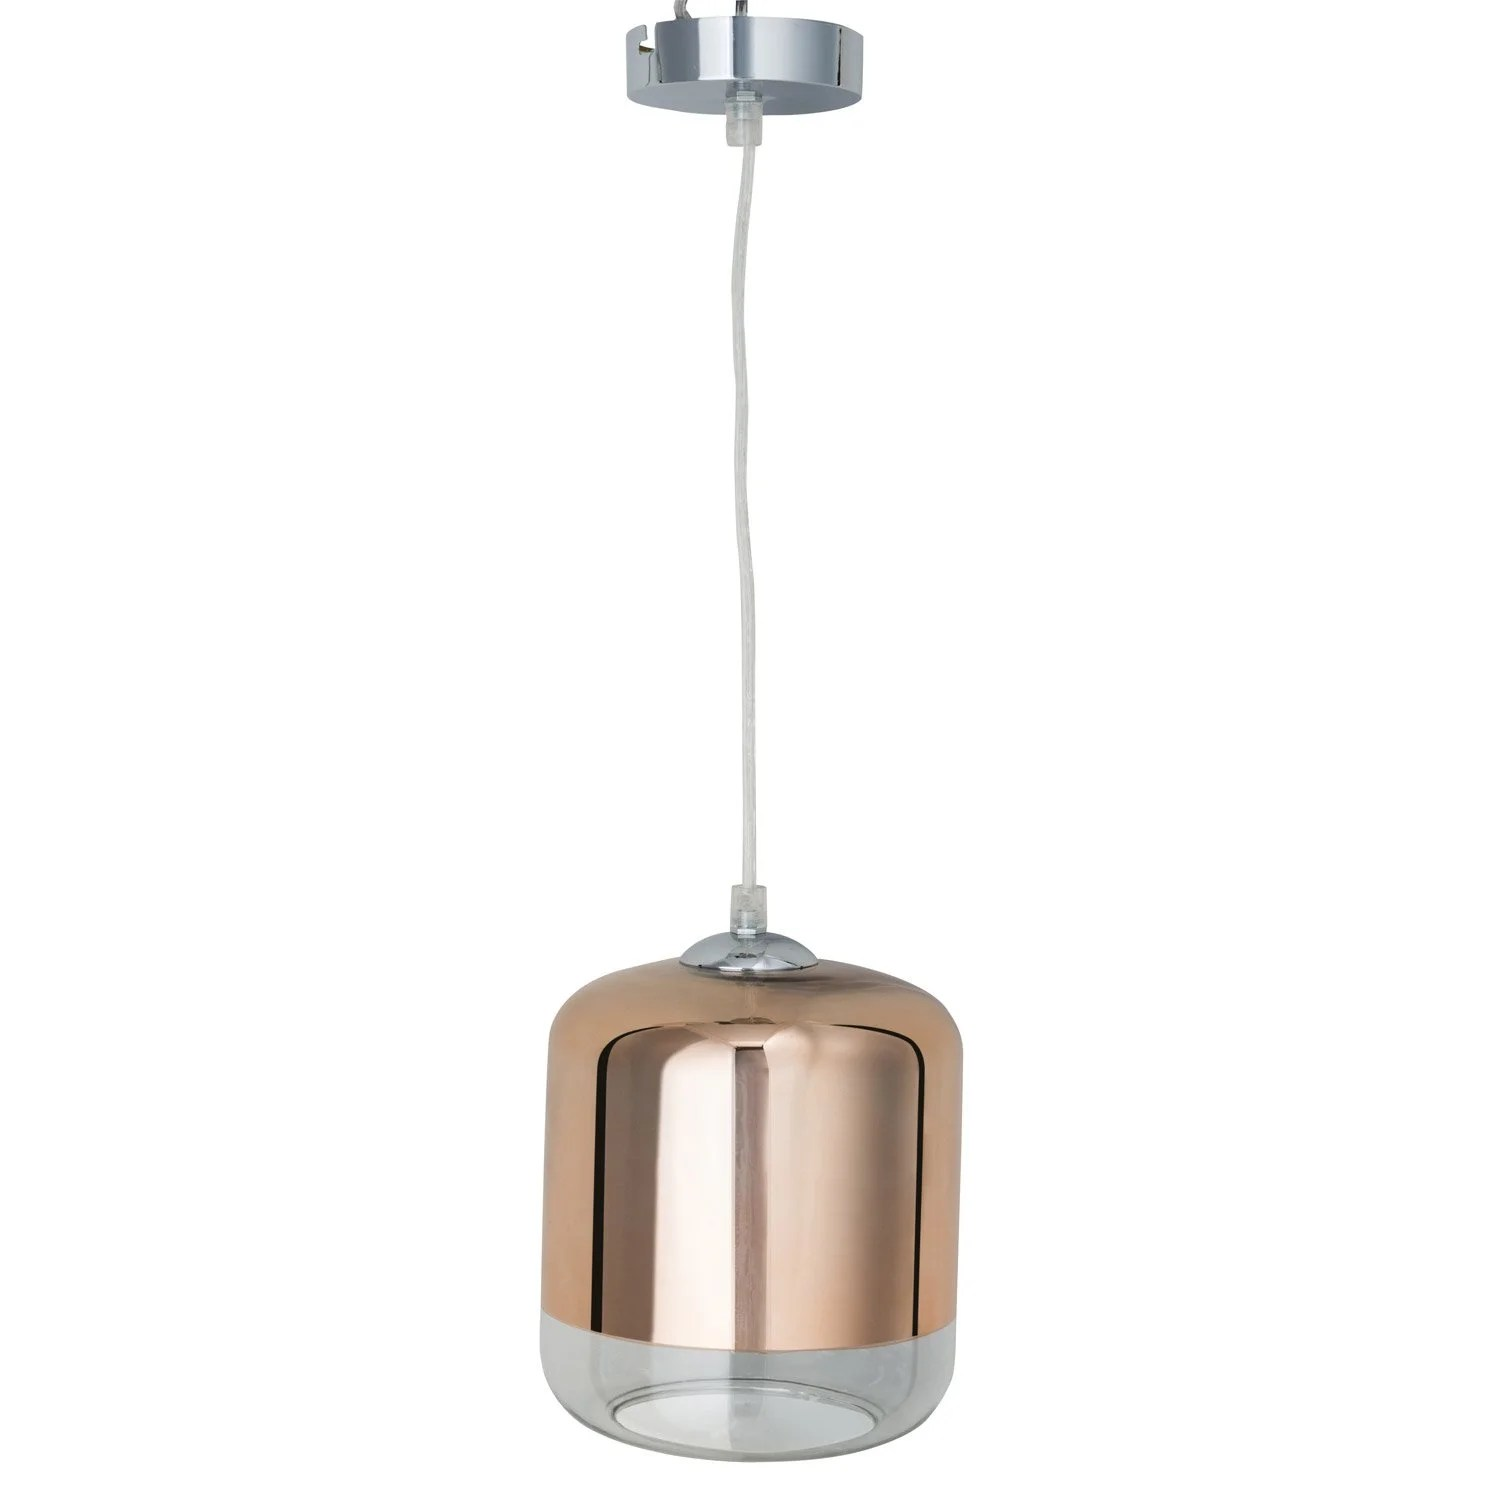 Suspension Design En Verre Suspension Design Myrta Verre Cuivre 1 X 60 W Inspire